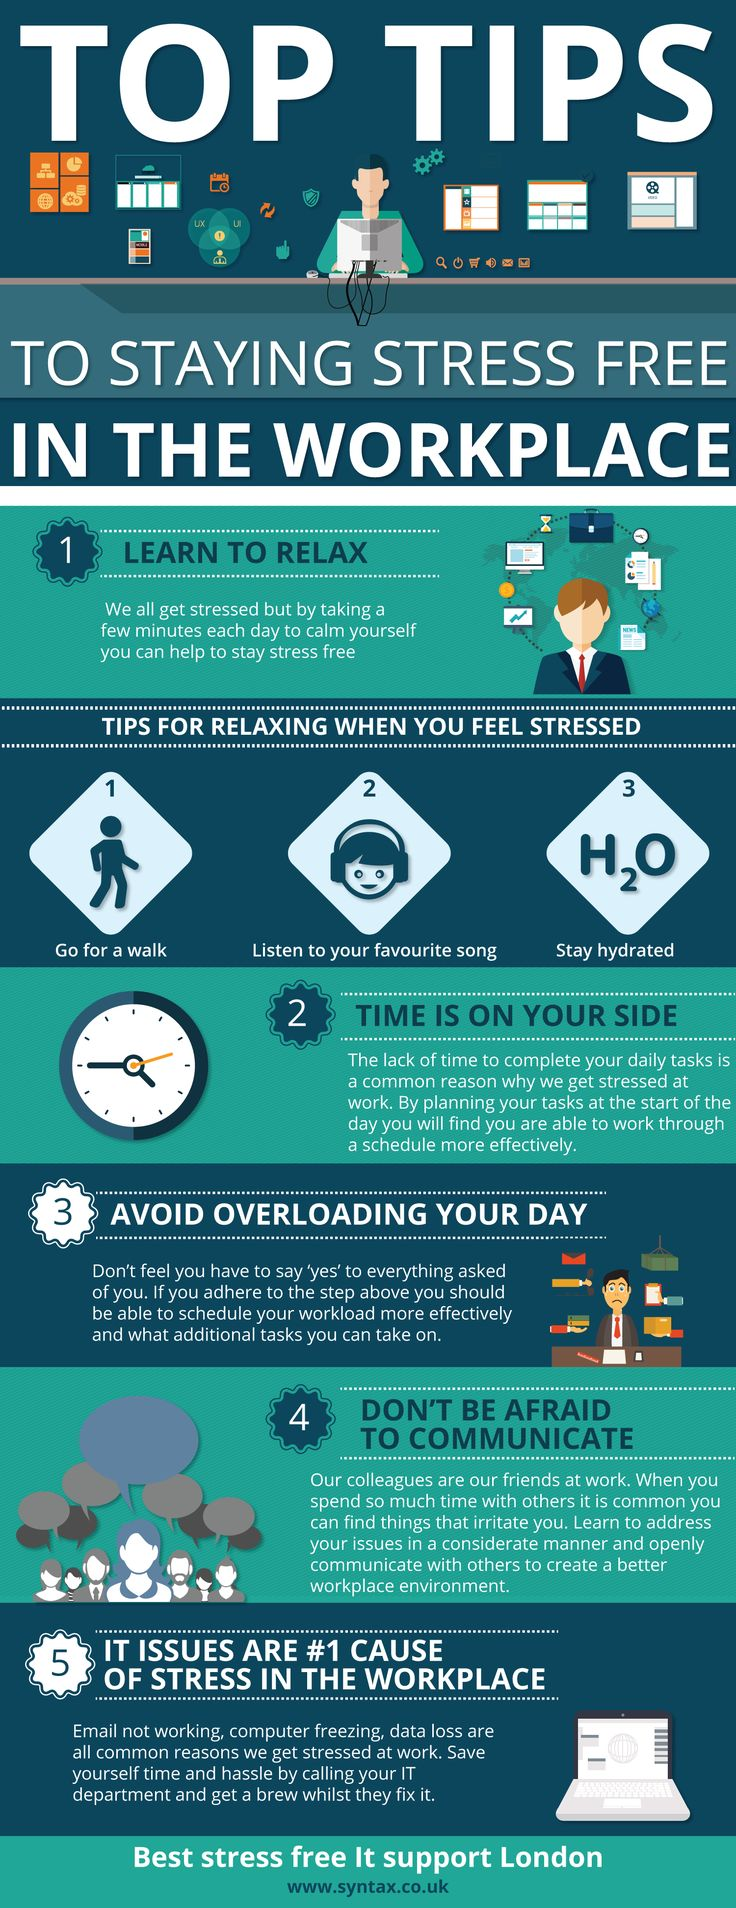 Top Tips To Staying Stress Free In The Workplace Infographic - http://elearninginfographics.com/top-tips-staying-stress-free-workplace-infographic/